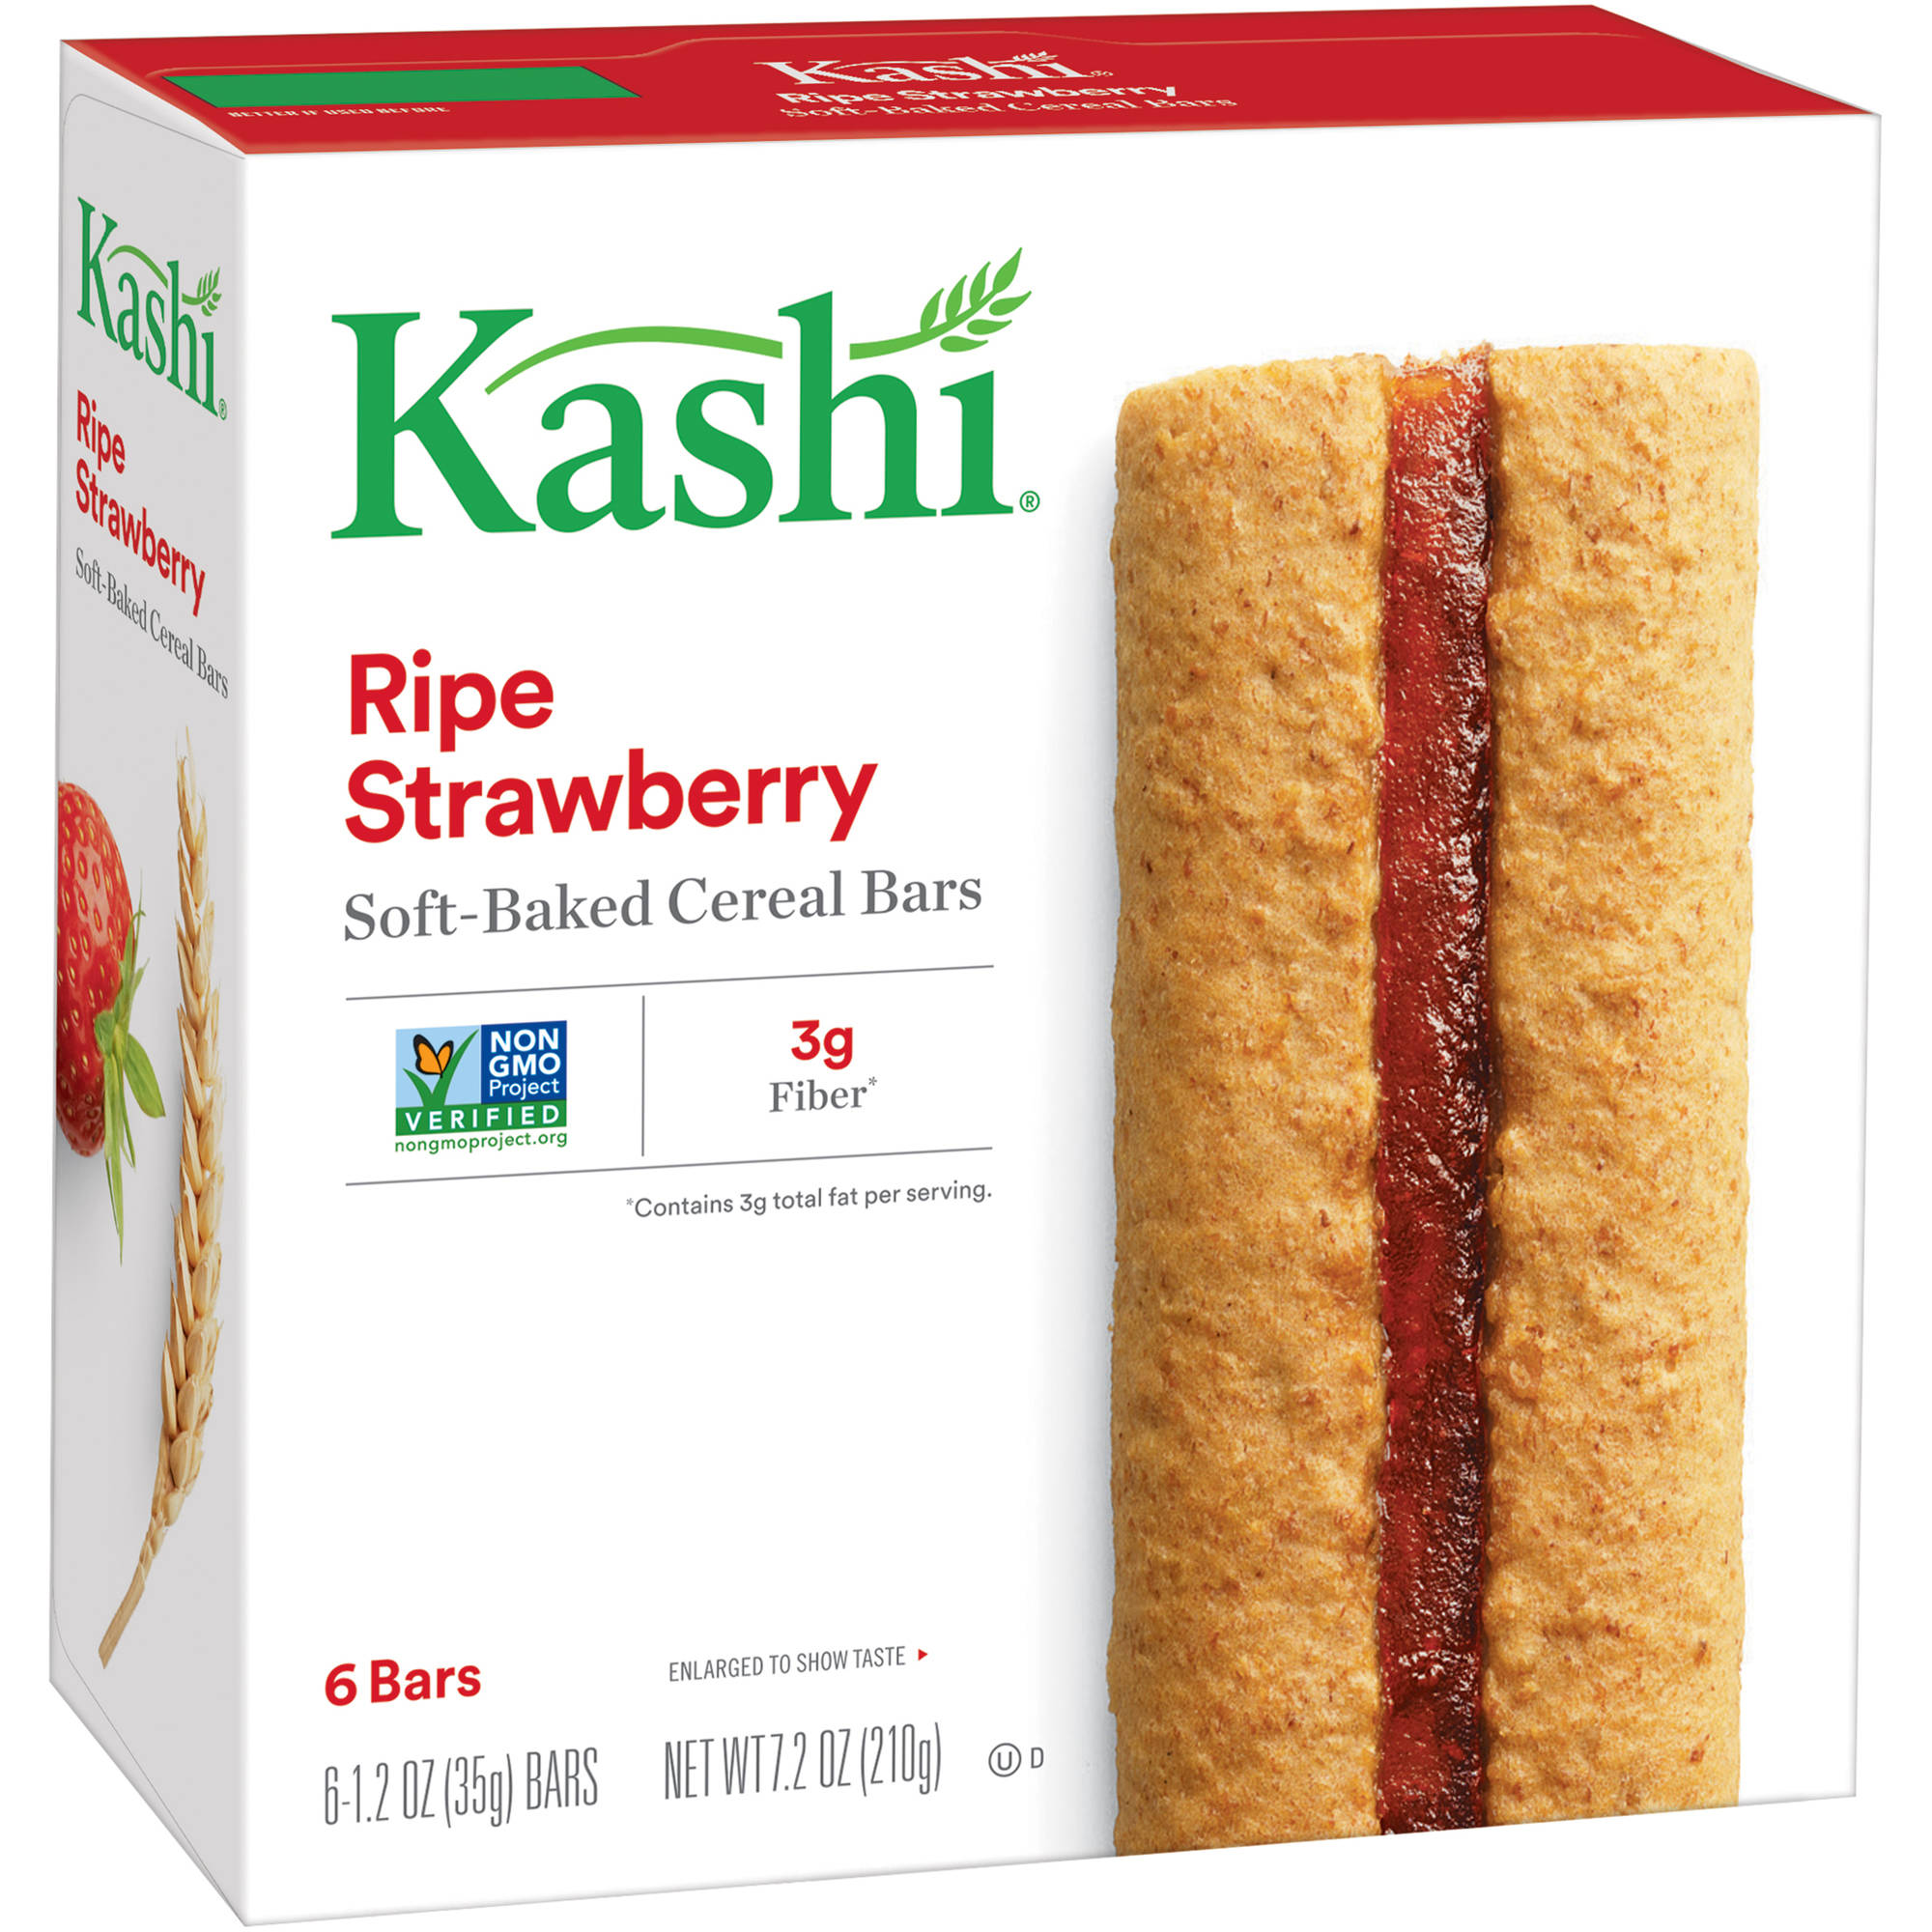 Kashi Ripe Strawberry Soft Baked Cereal Bars, 6 ct 7.2 oz